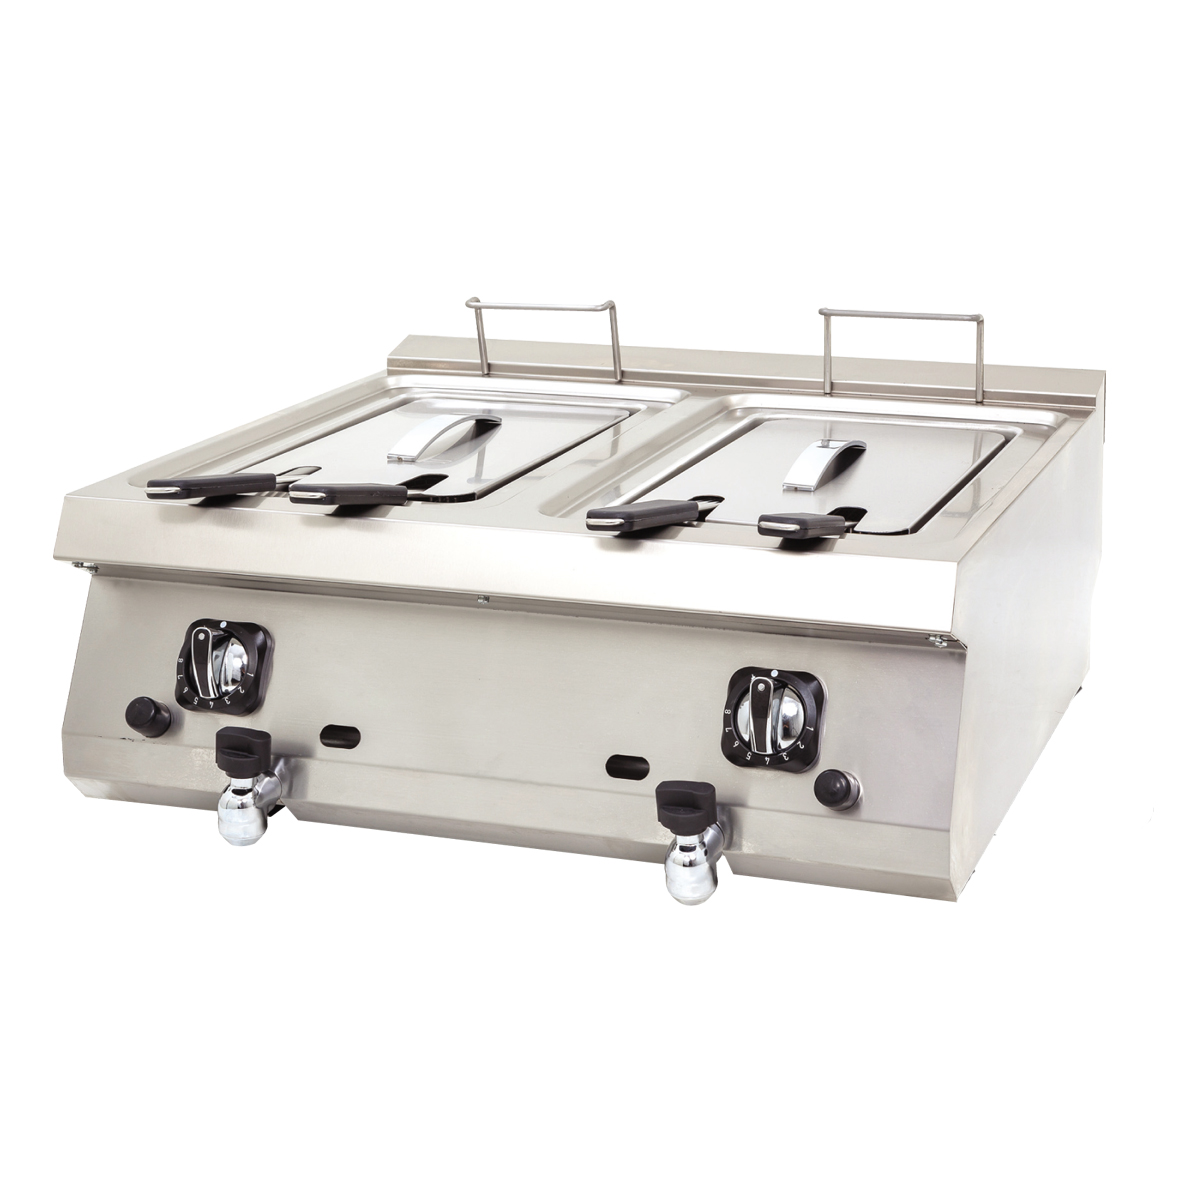 Gas Fryer - 80x70